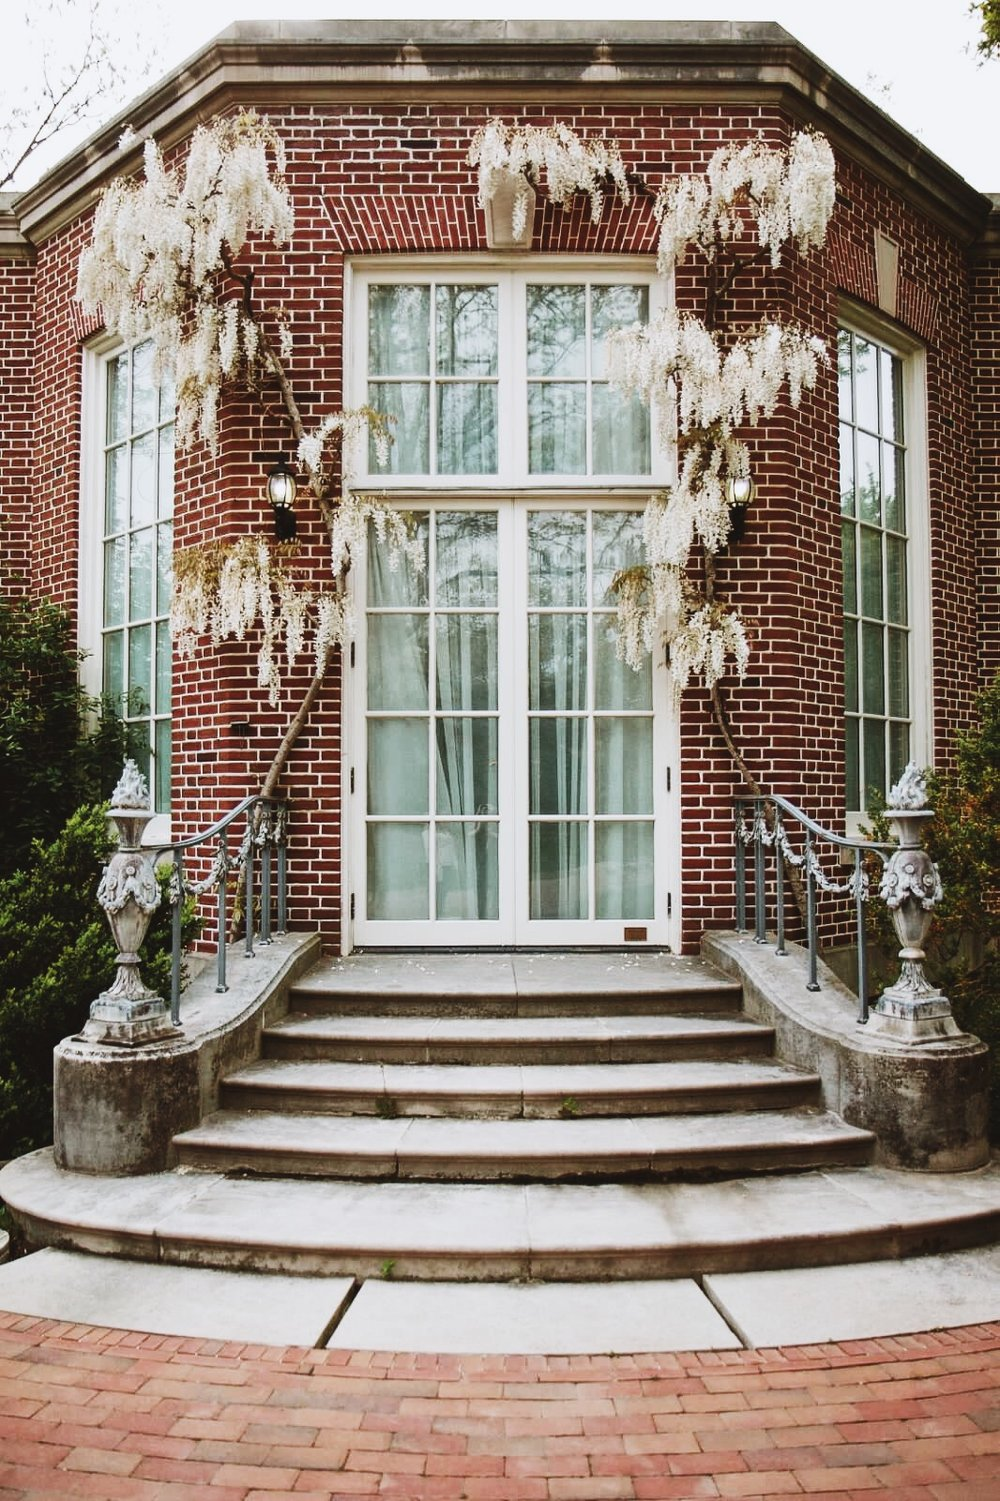 All photos by Danielle Dragone in Dumbarton Oaks, Washington D.C.